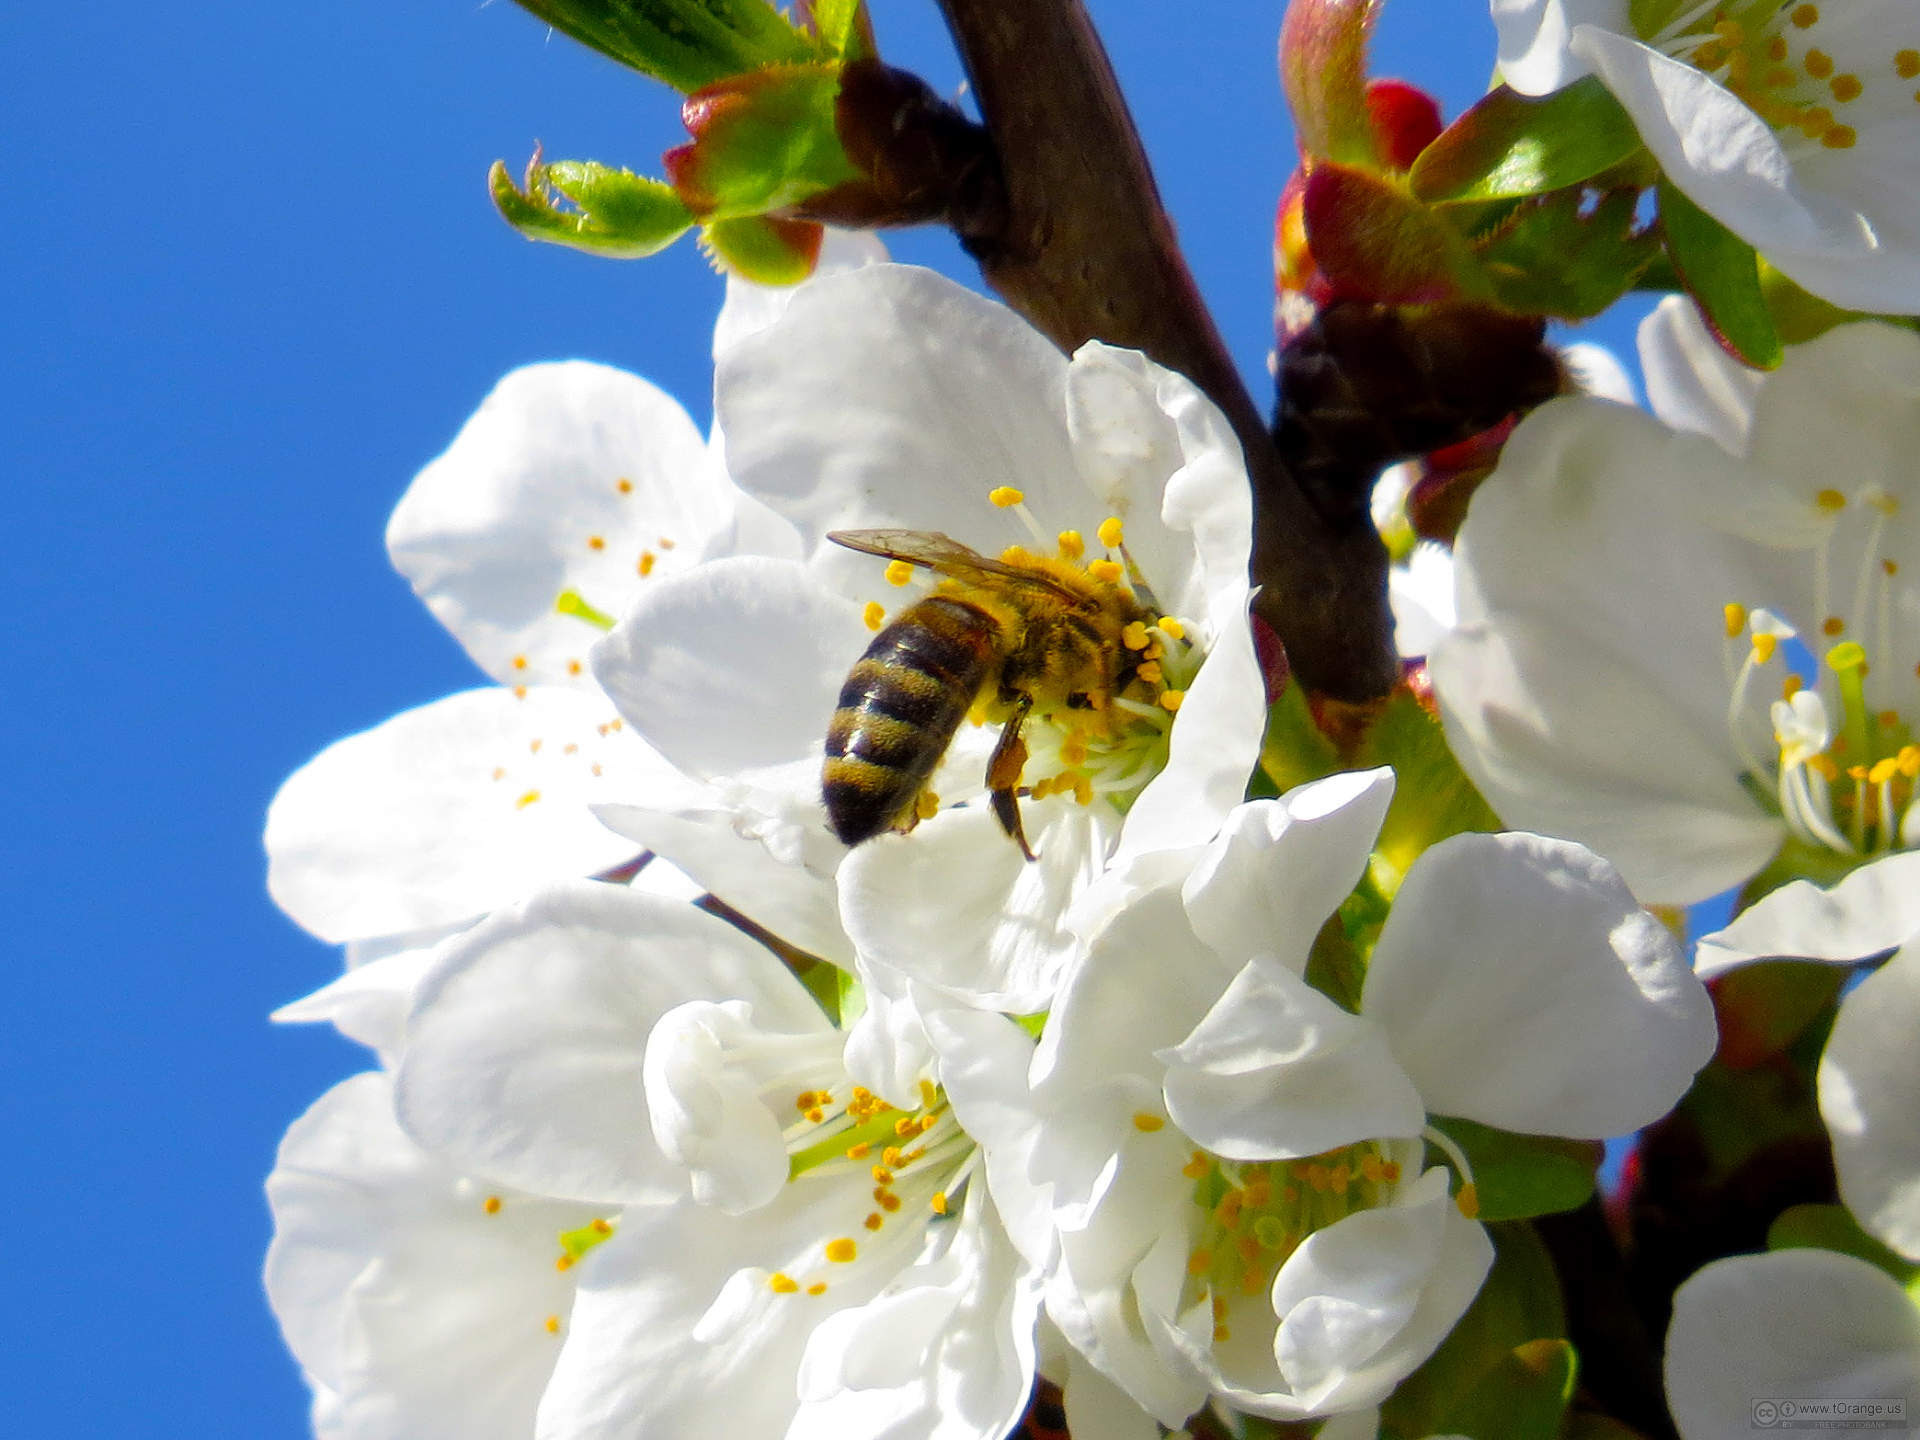 Bee-in-flower-1384347242_89.jpg